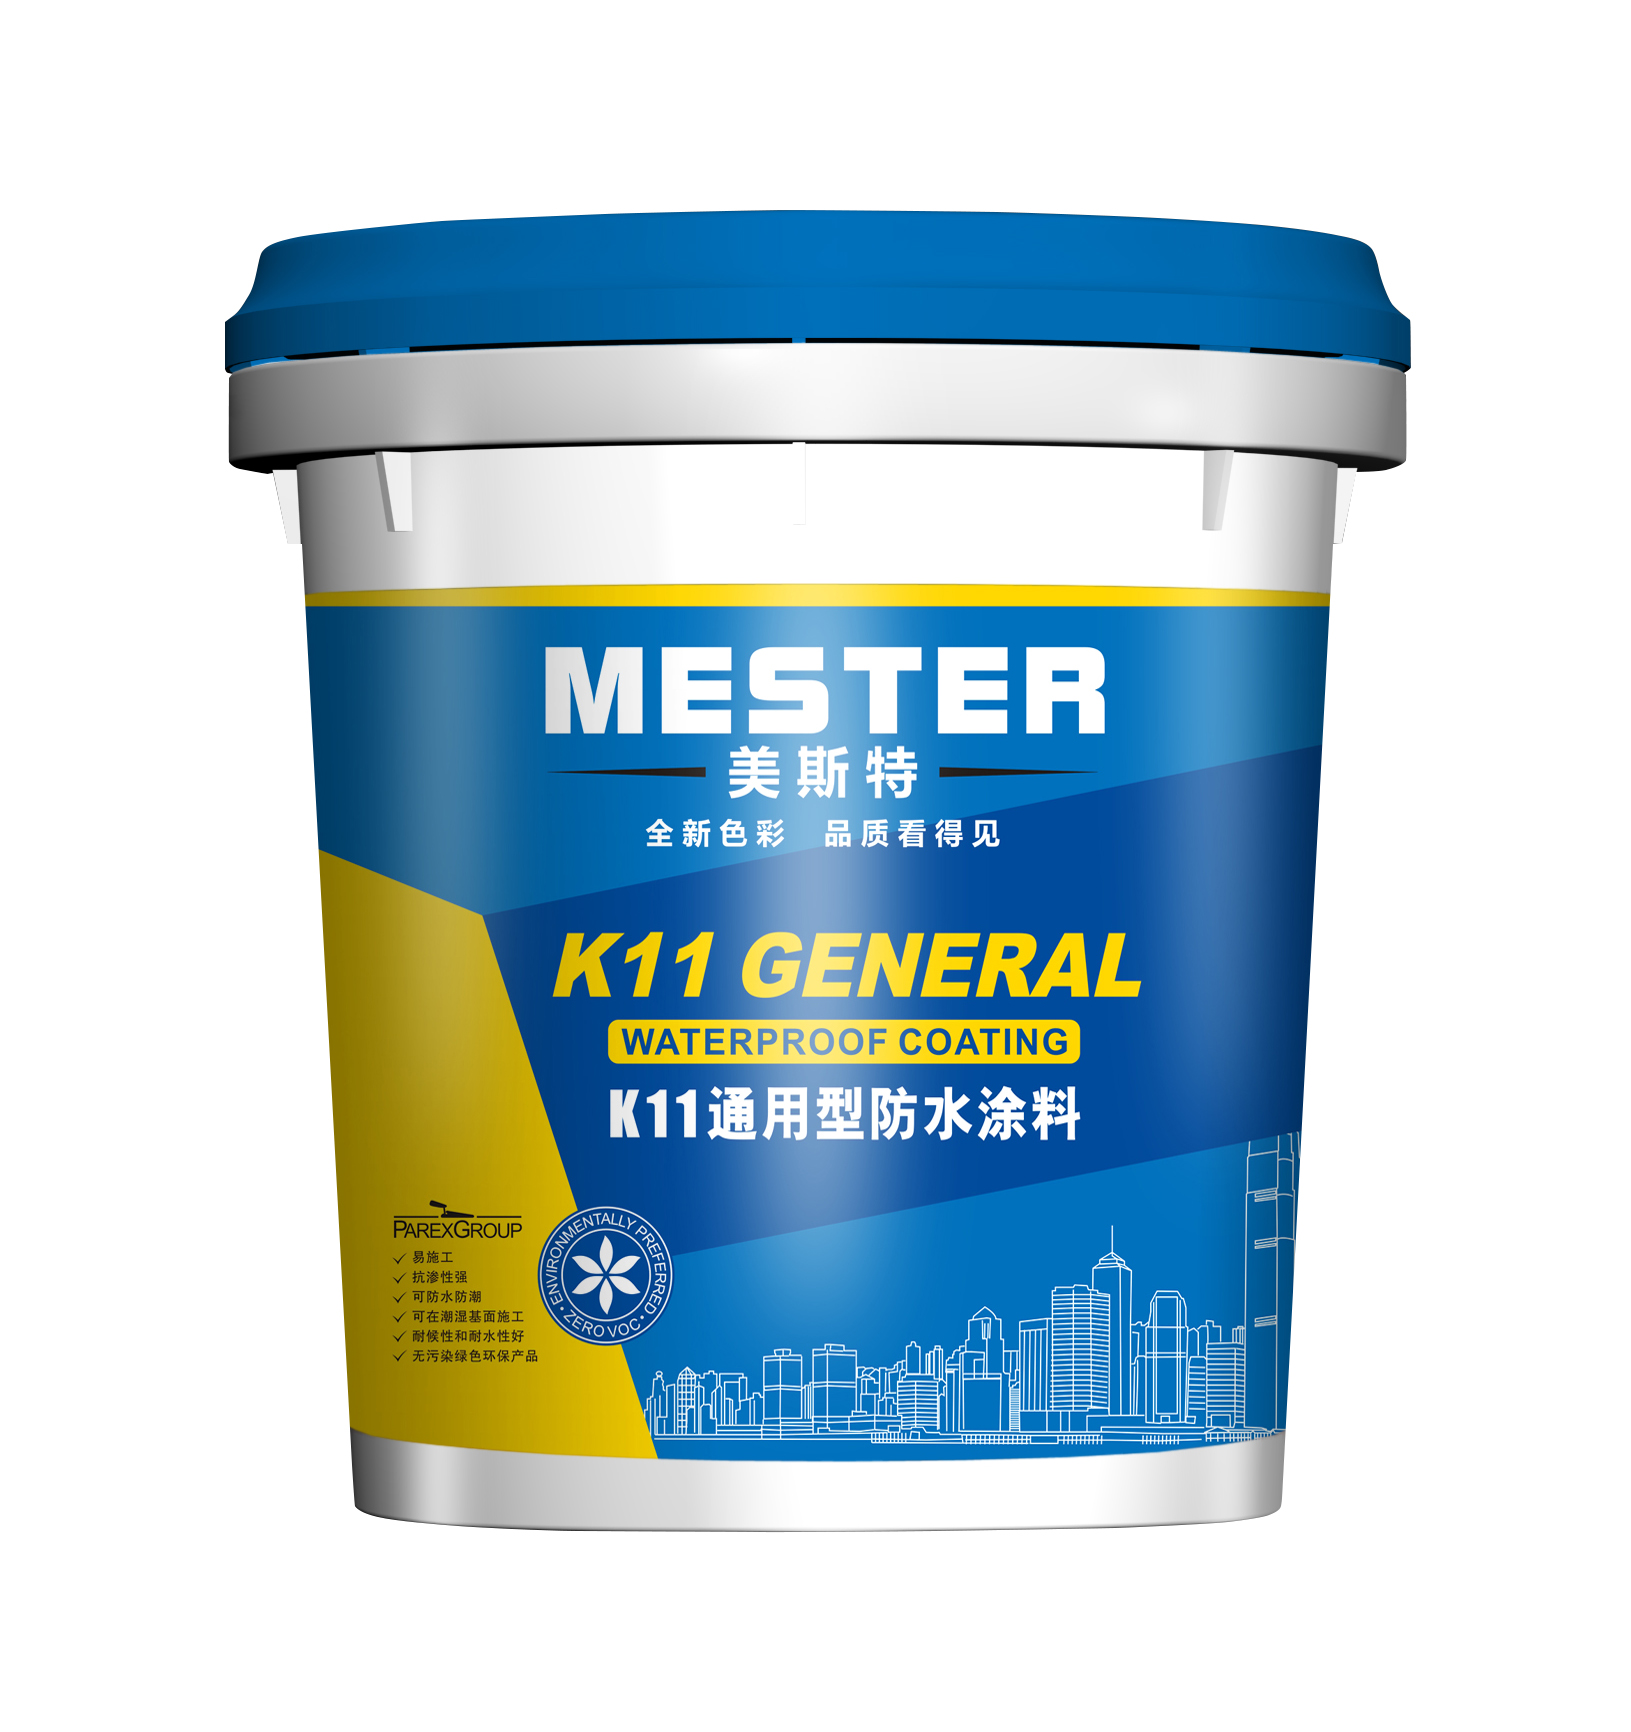 Acrylic Raw Materials Exterior Wall Roofing Waterproofing Glue Spray Coating for Building Construction